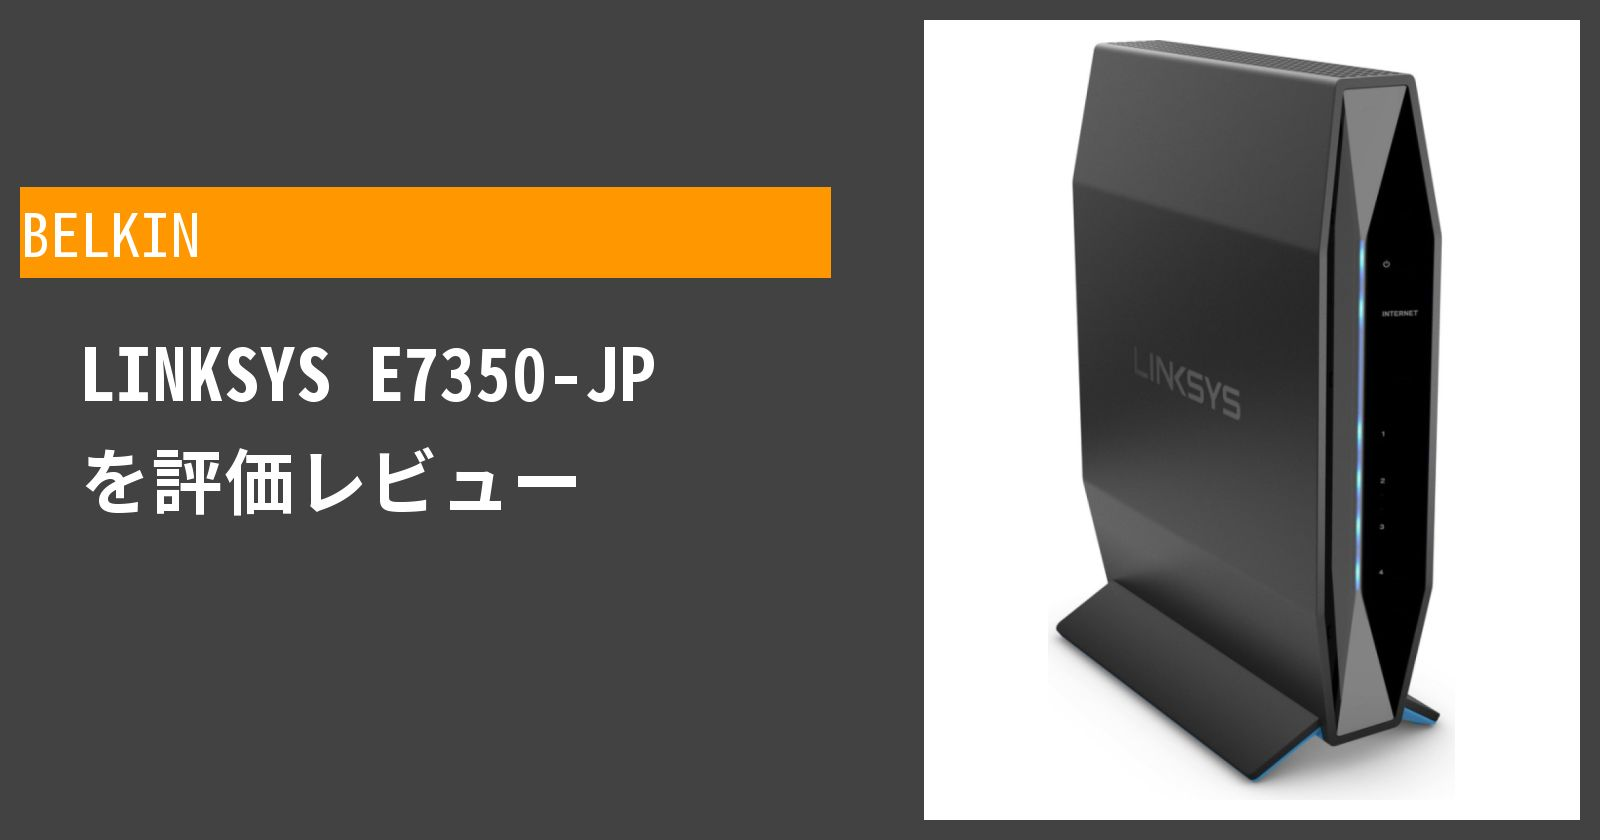 LINKSYS E7350-JPを徹底評価